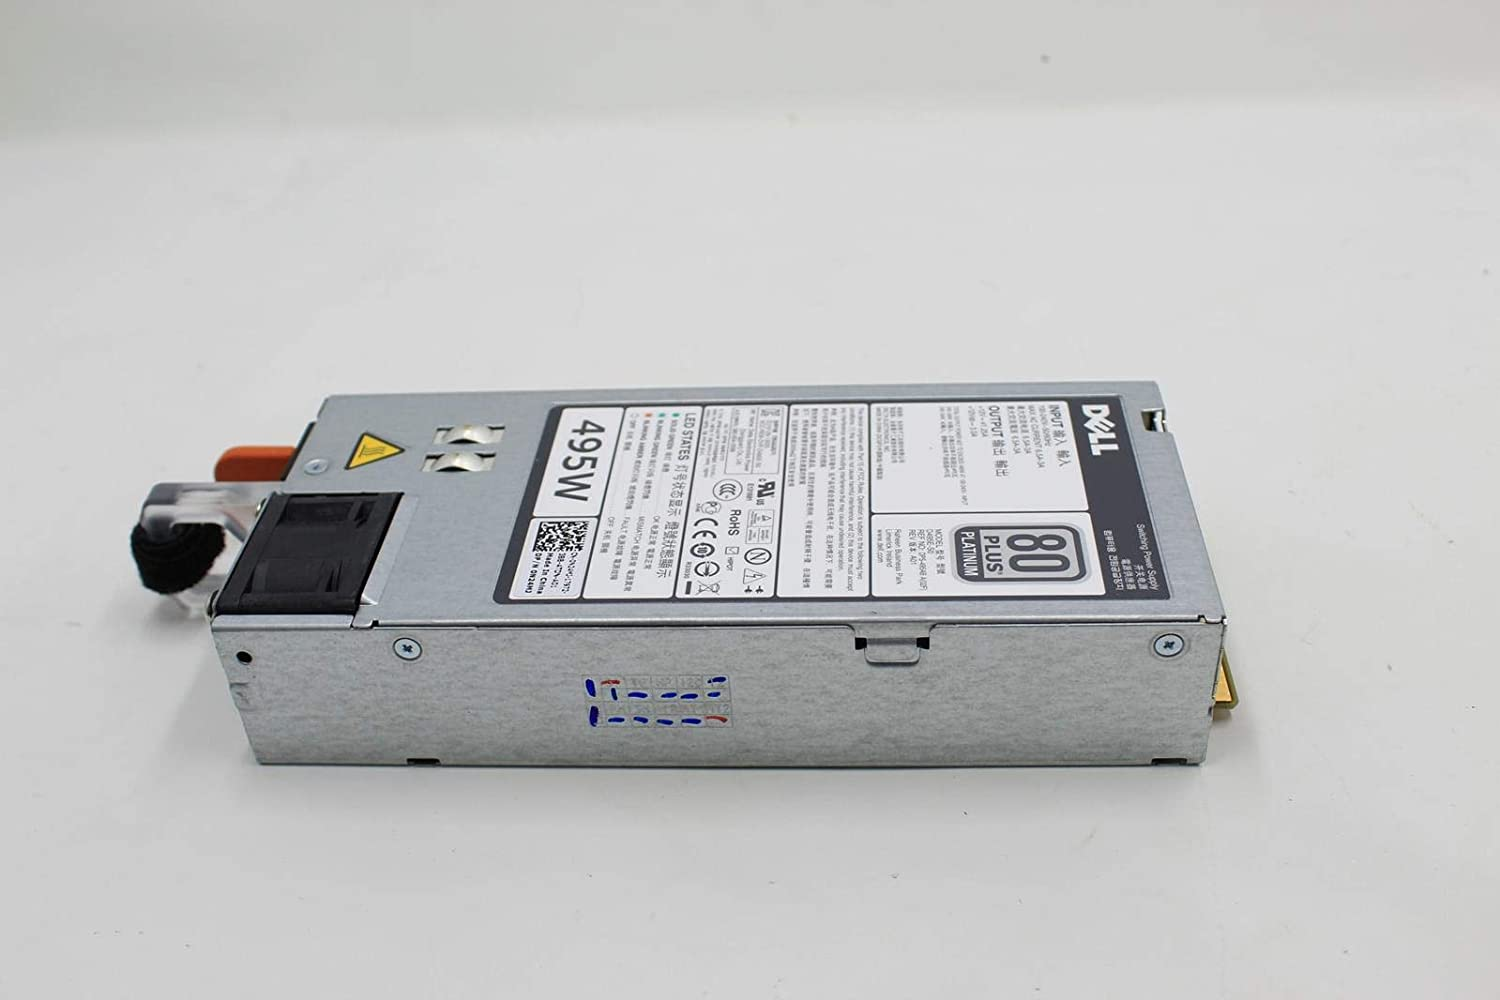 DELL 0N24MJ N24MJ POWER SUPPLY Poweredge T320 T420 T620 R520, R620 R720